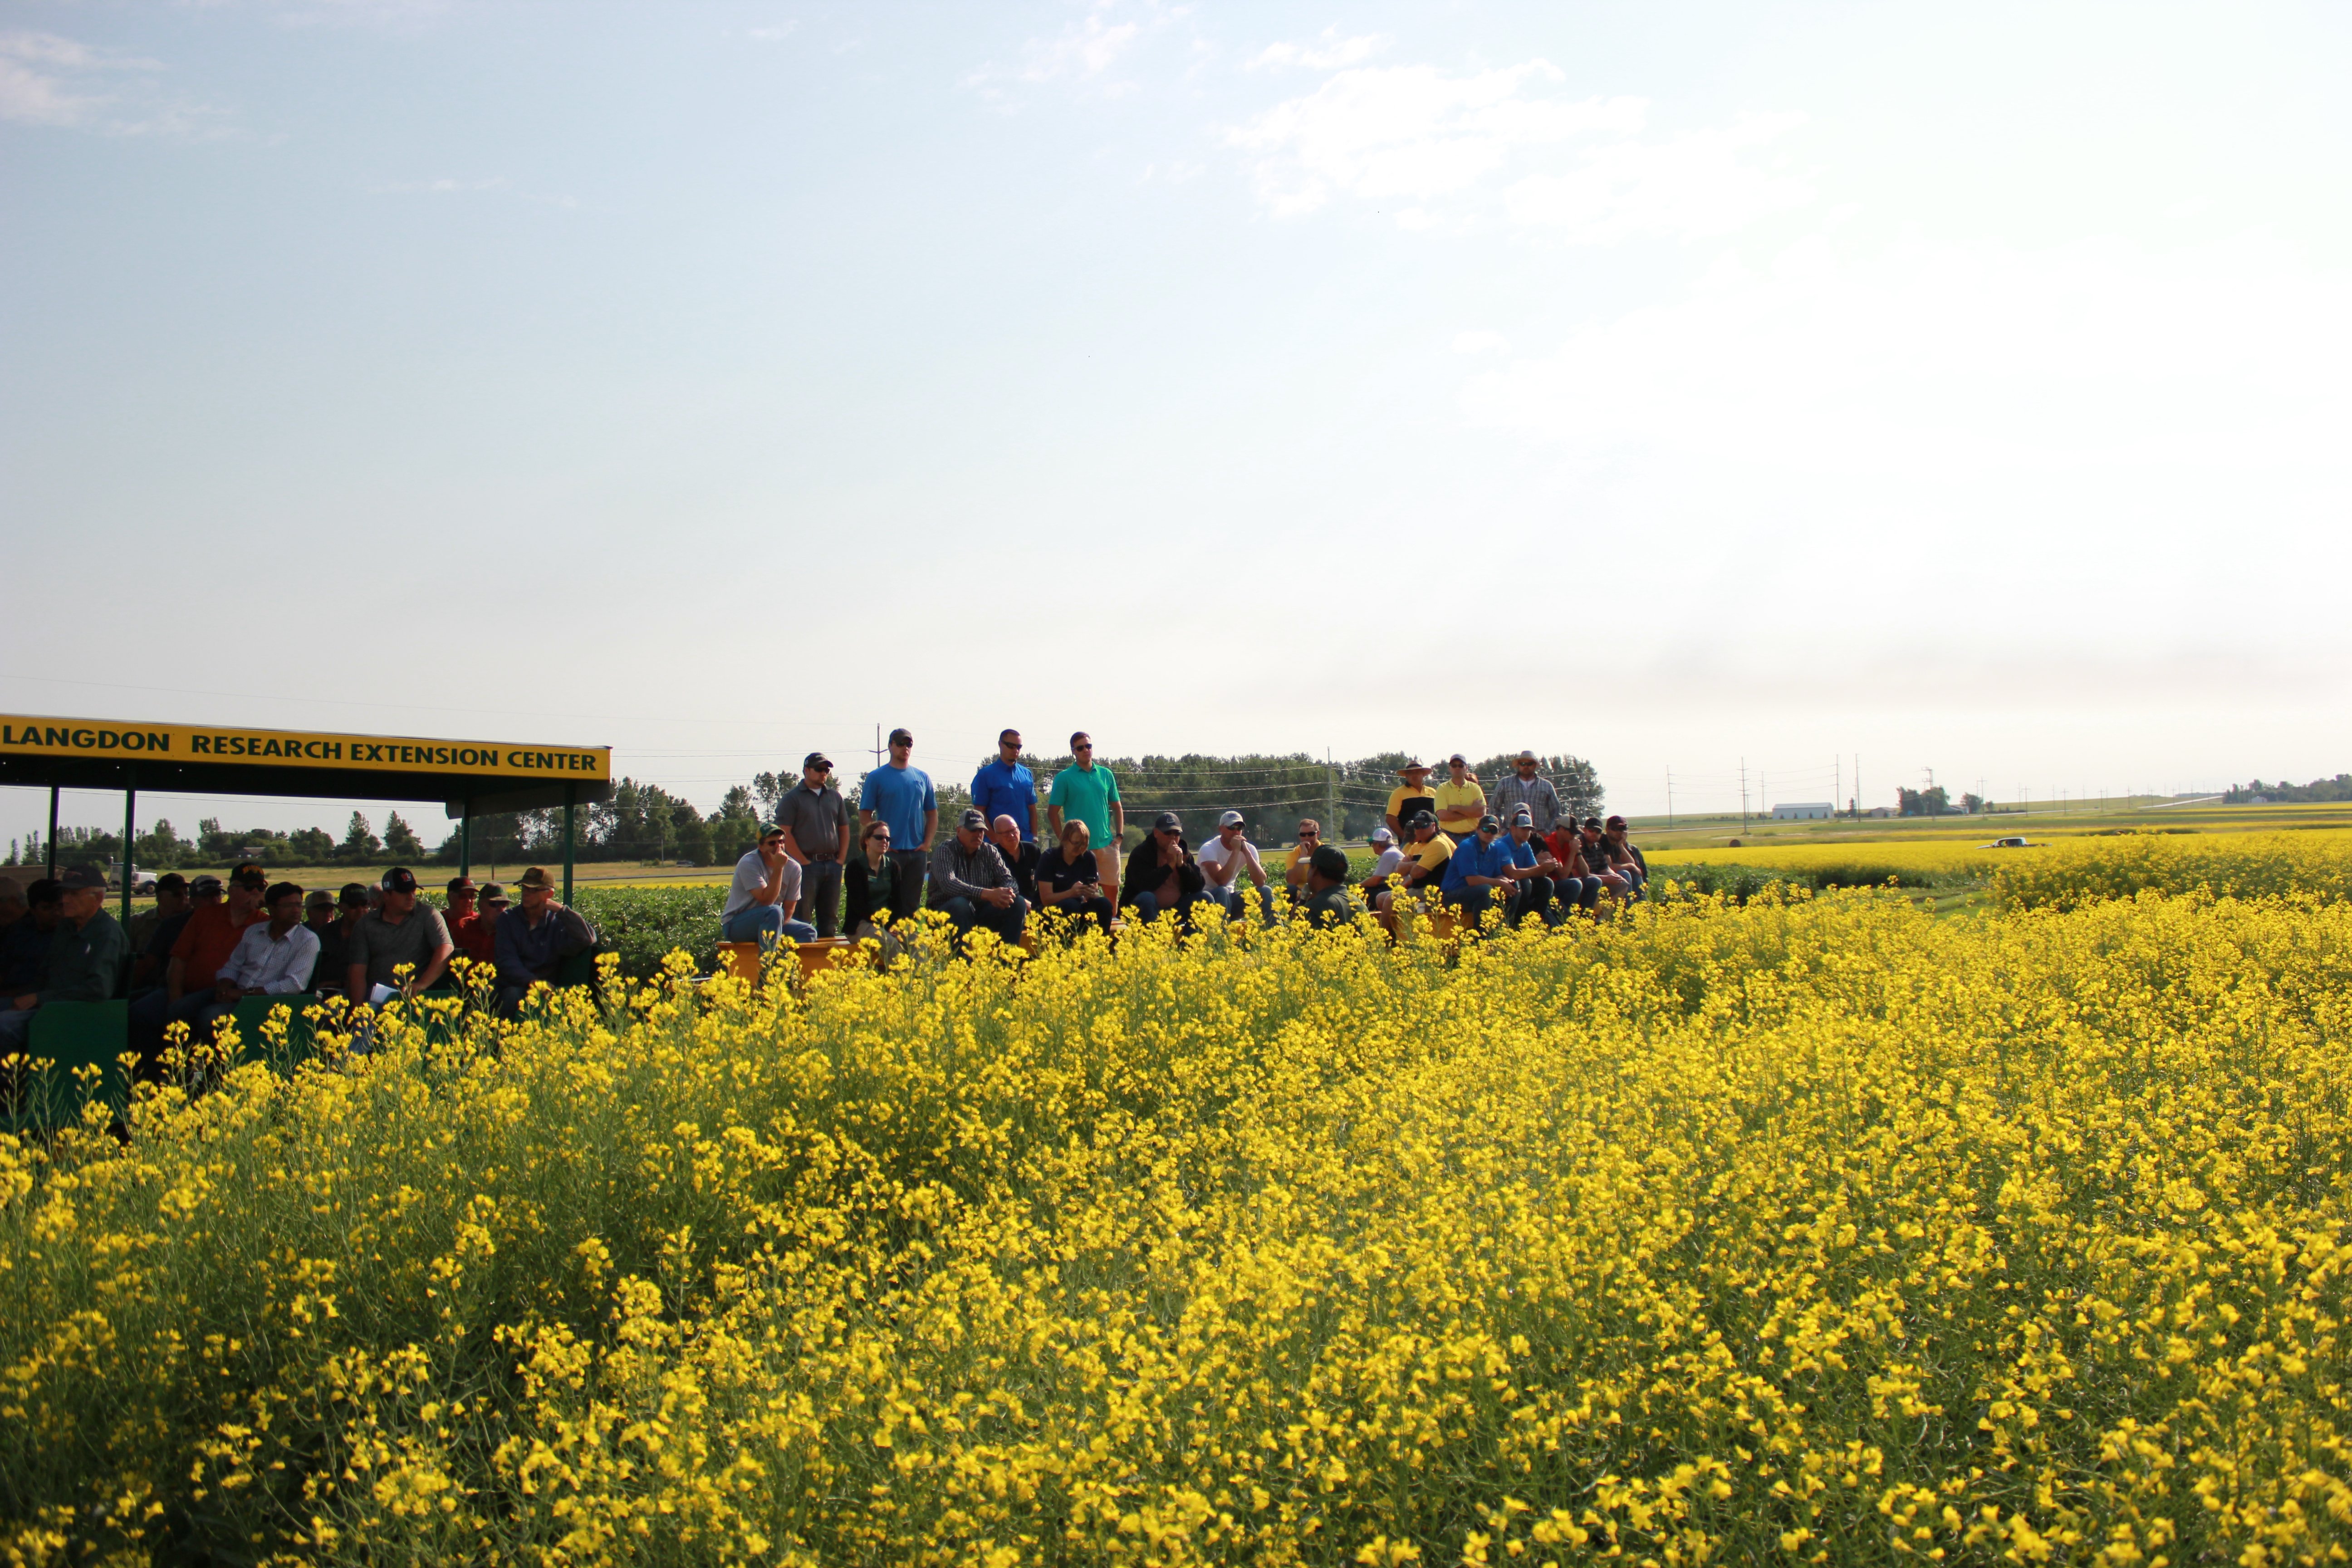 Visitors get a look at canola during a field tour at NDSU's Langdon Research Extension Center. (NDSU photo)